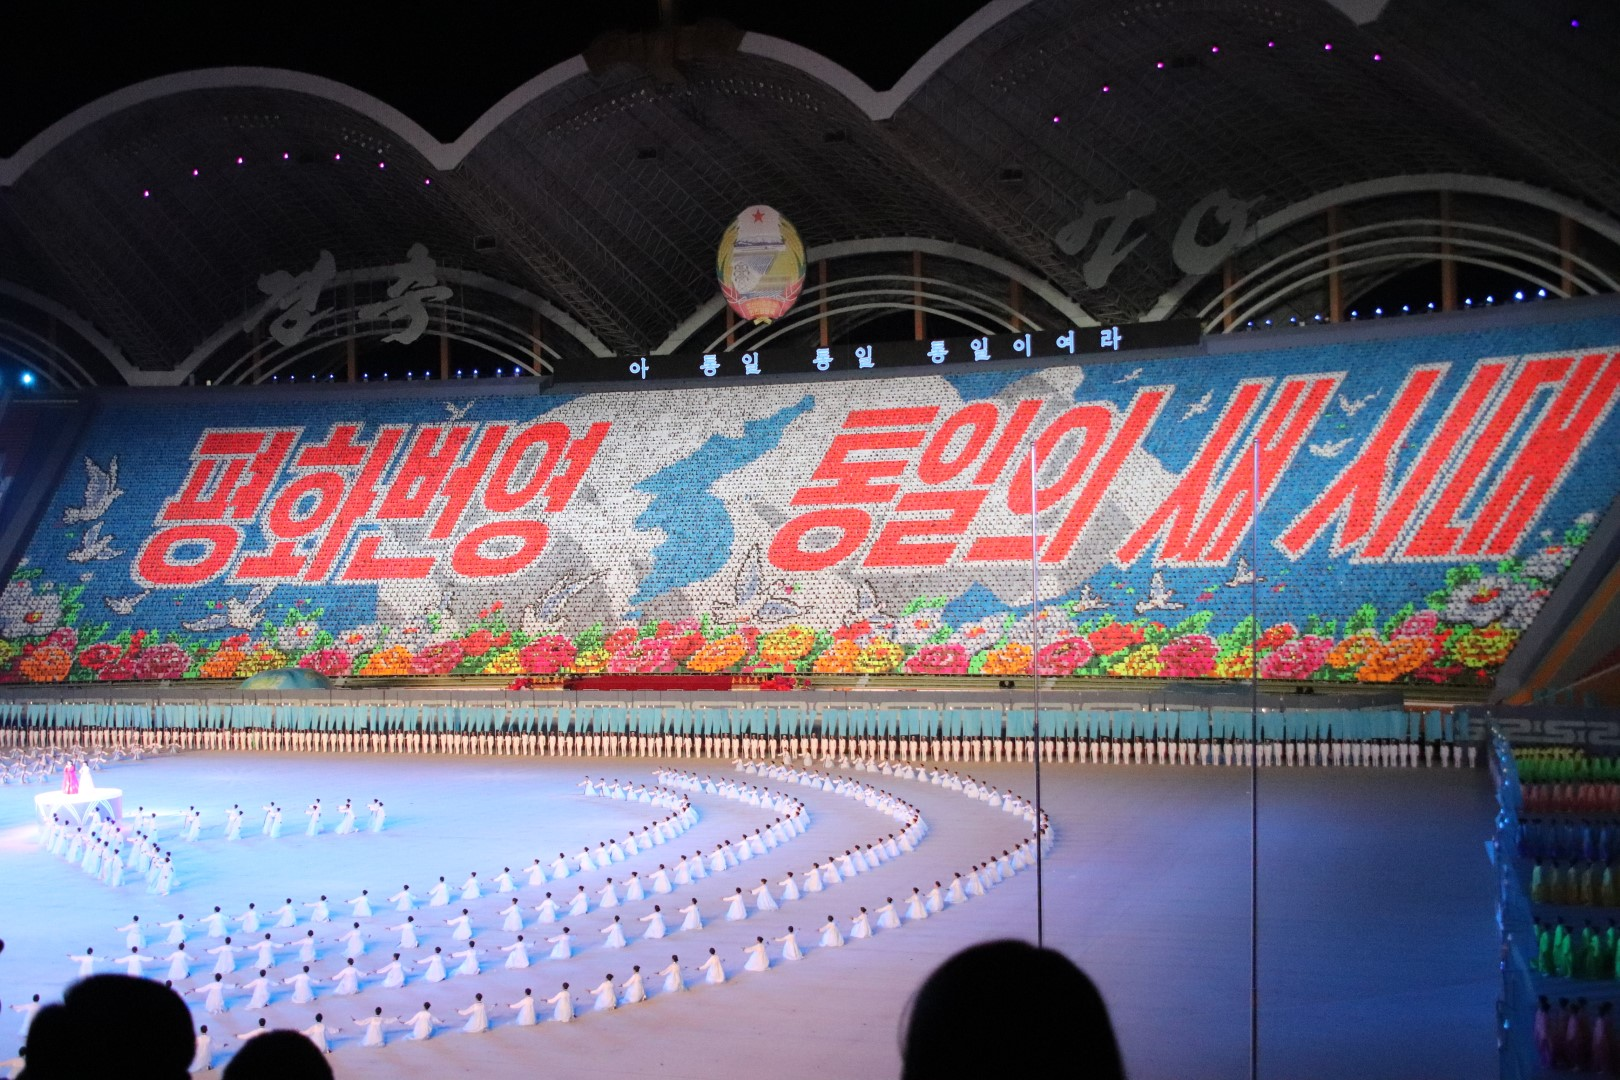 North Korea extends 'Mass Games' event to late October: tour agencies